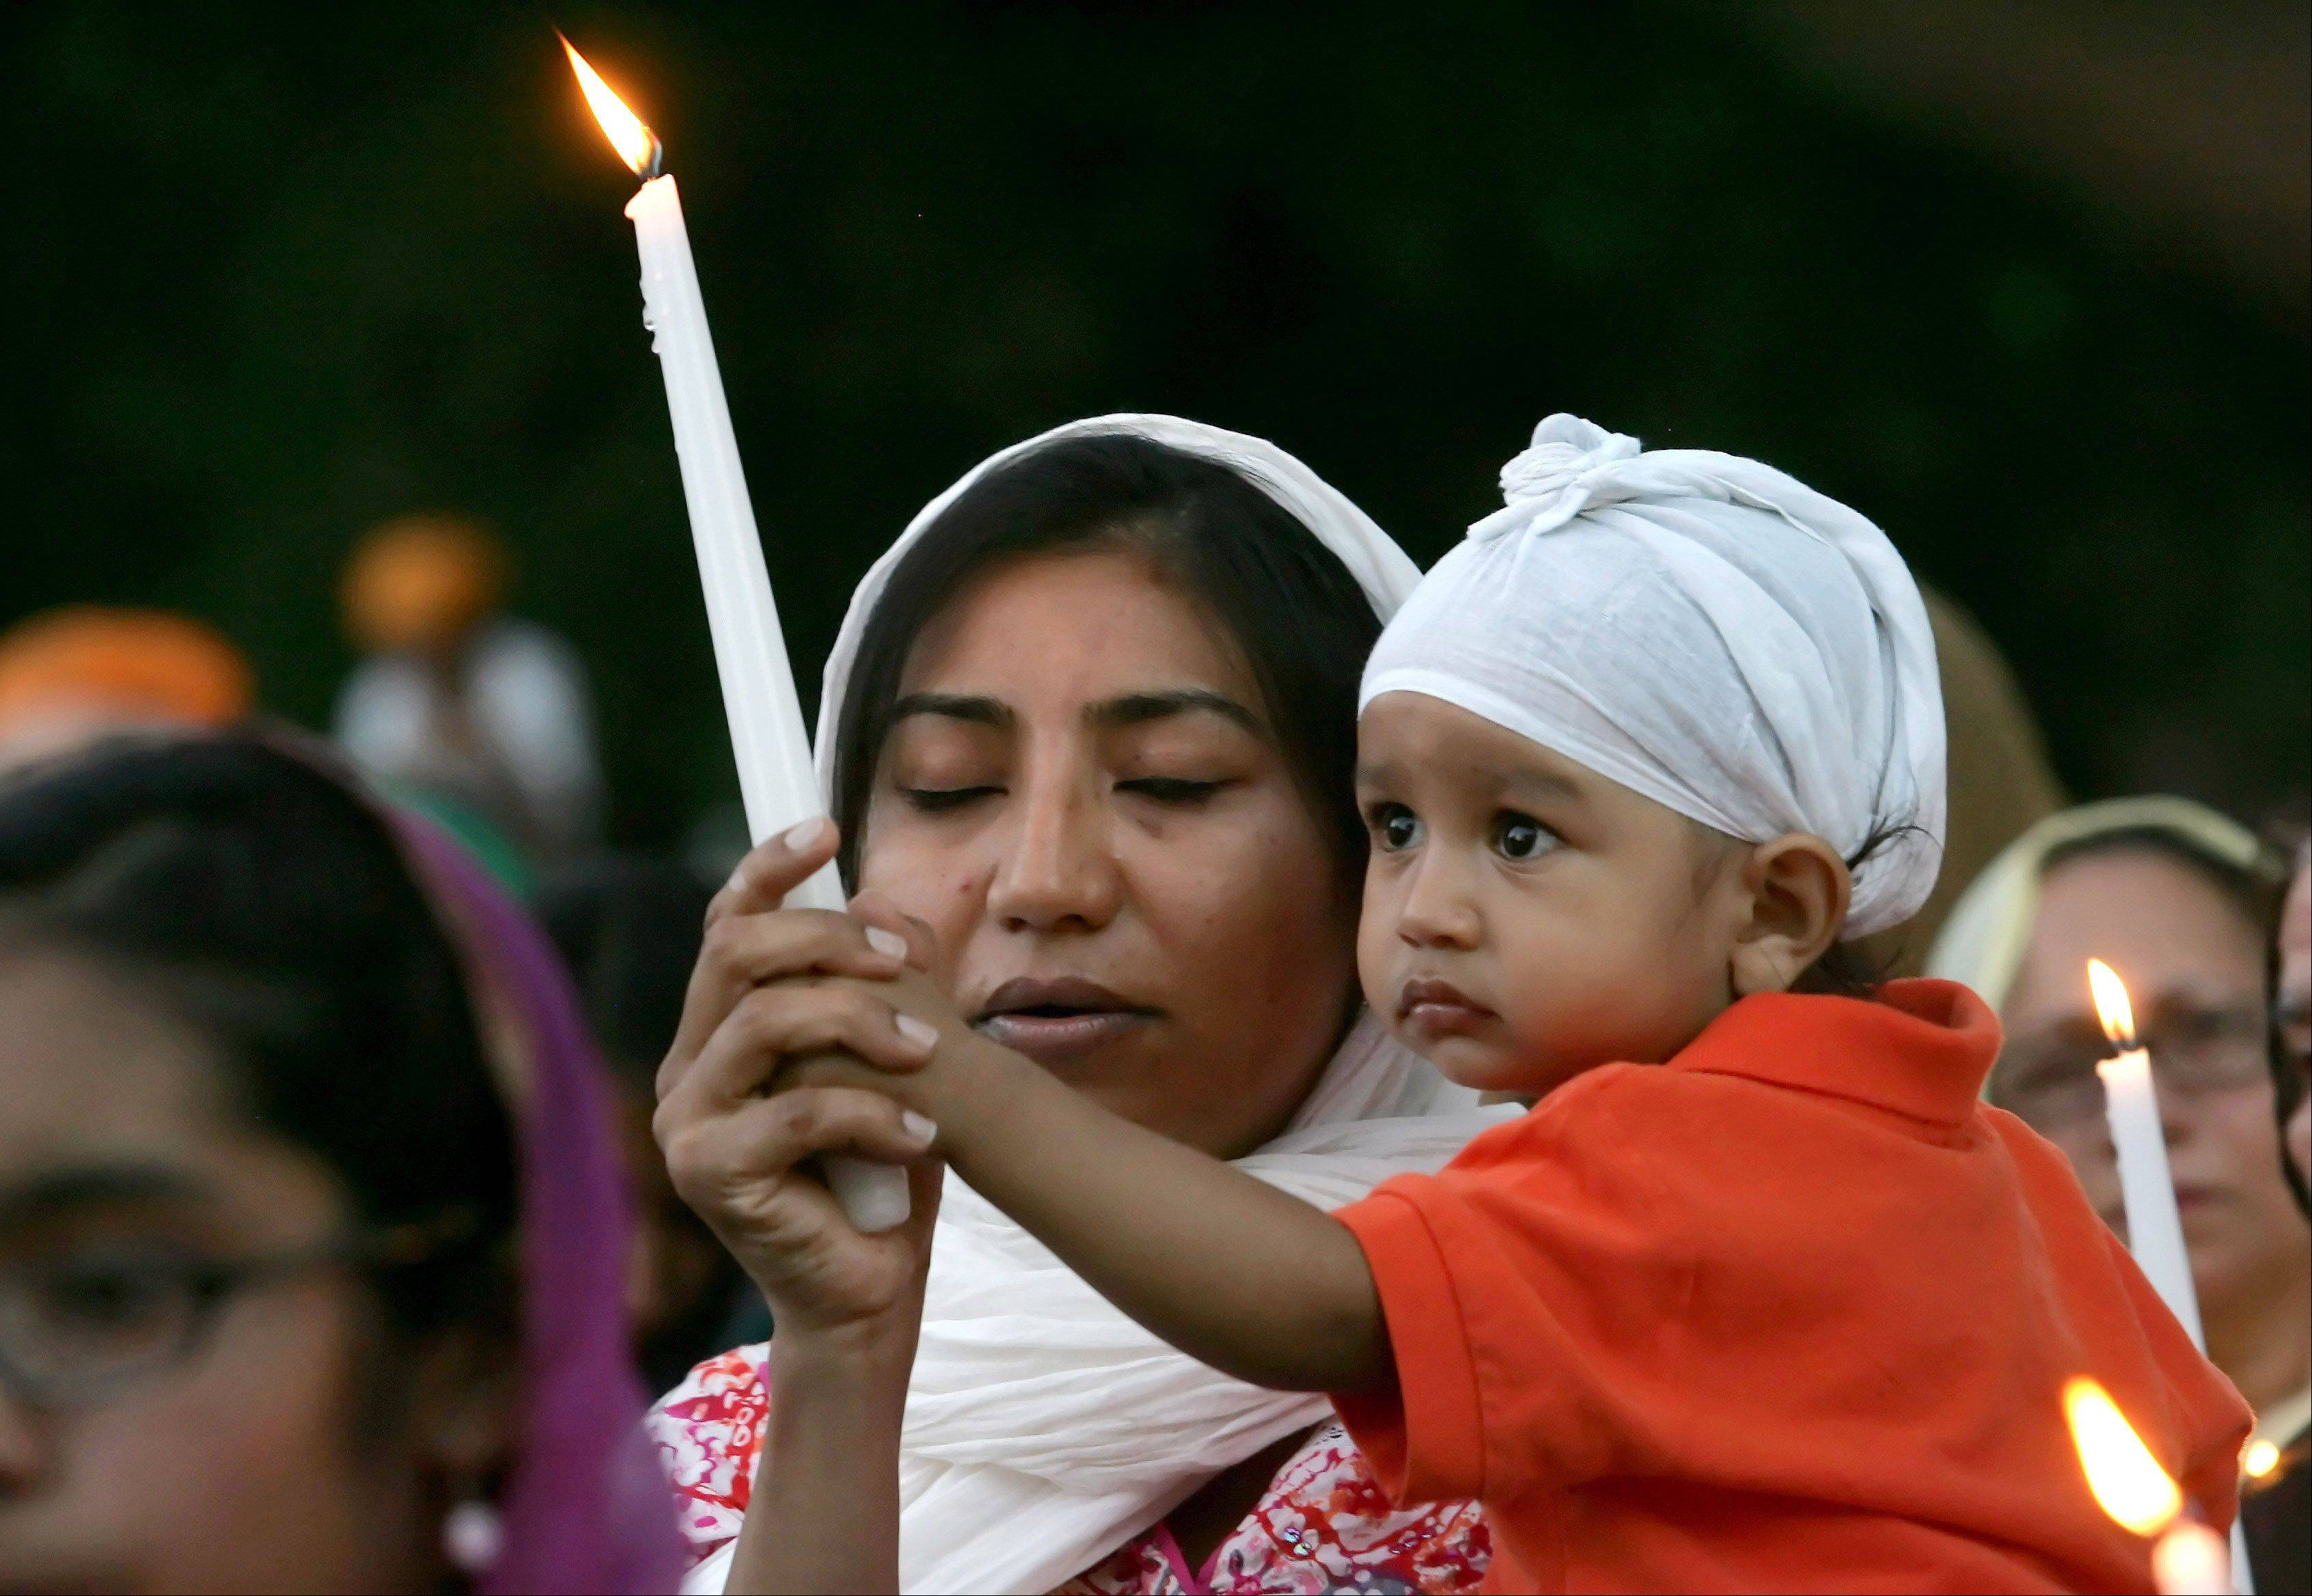 Kawal Preet and her son Prabhnek, 15 months old, visiting from San Franciso, take part in the candlelight vigil at Illinois Sikh Communty Center in Wheaton in the wake of shootings at a Wisconsin Sikh temple.